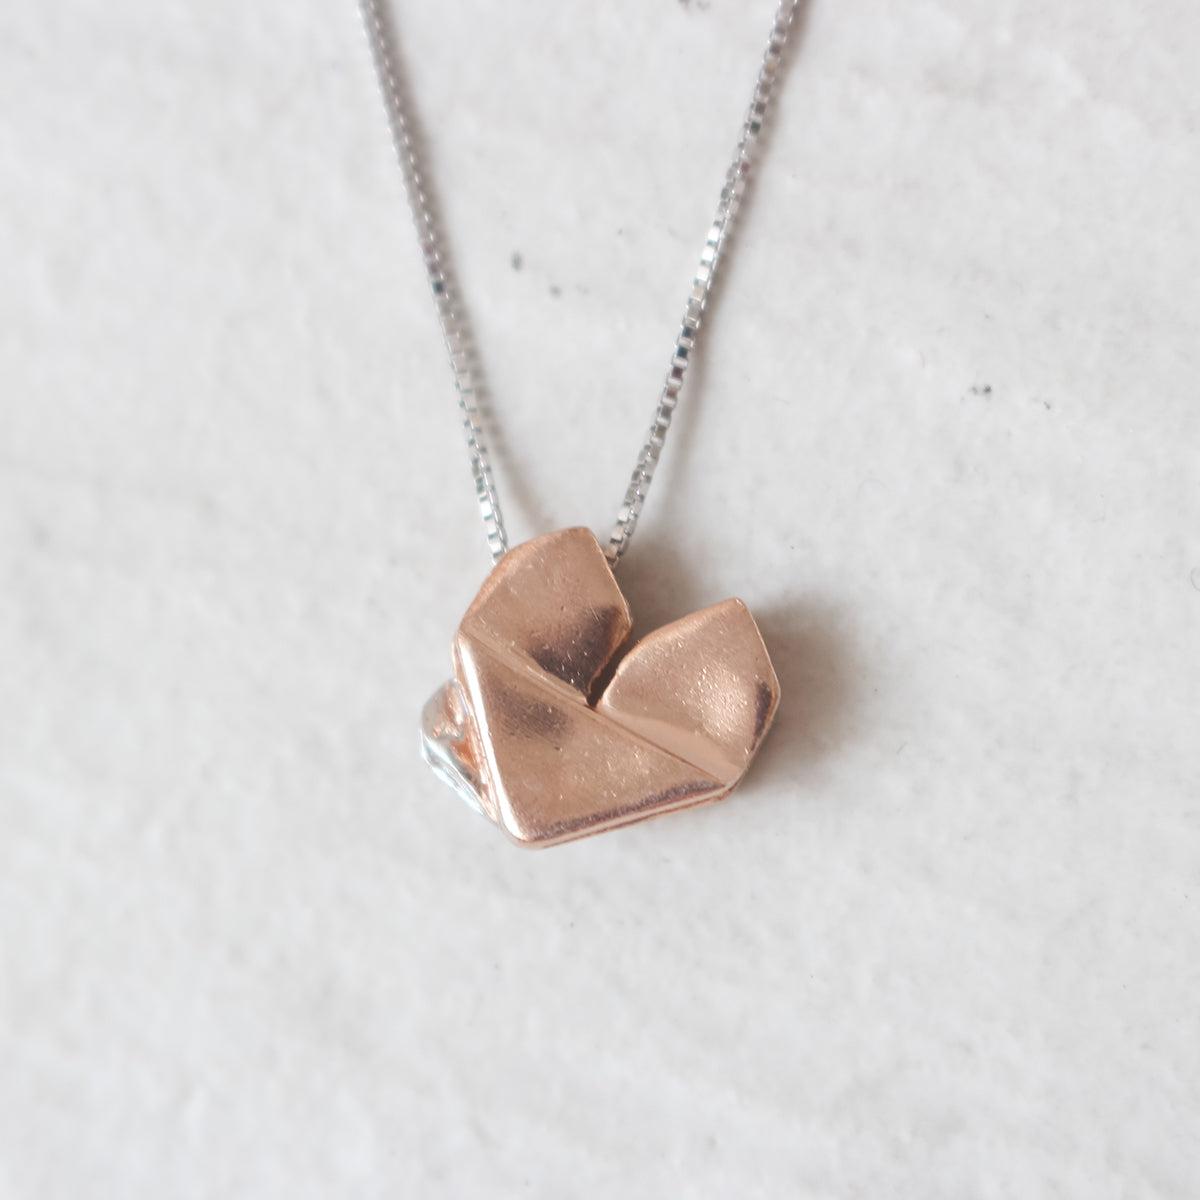 Dual Color Silver Origami Heart Necklace - Mother's Love (Rose Gold and Silver)